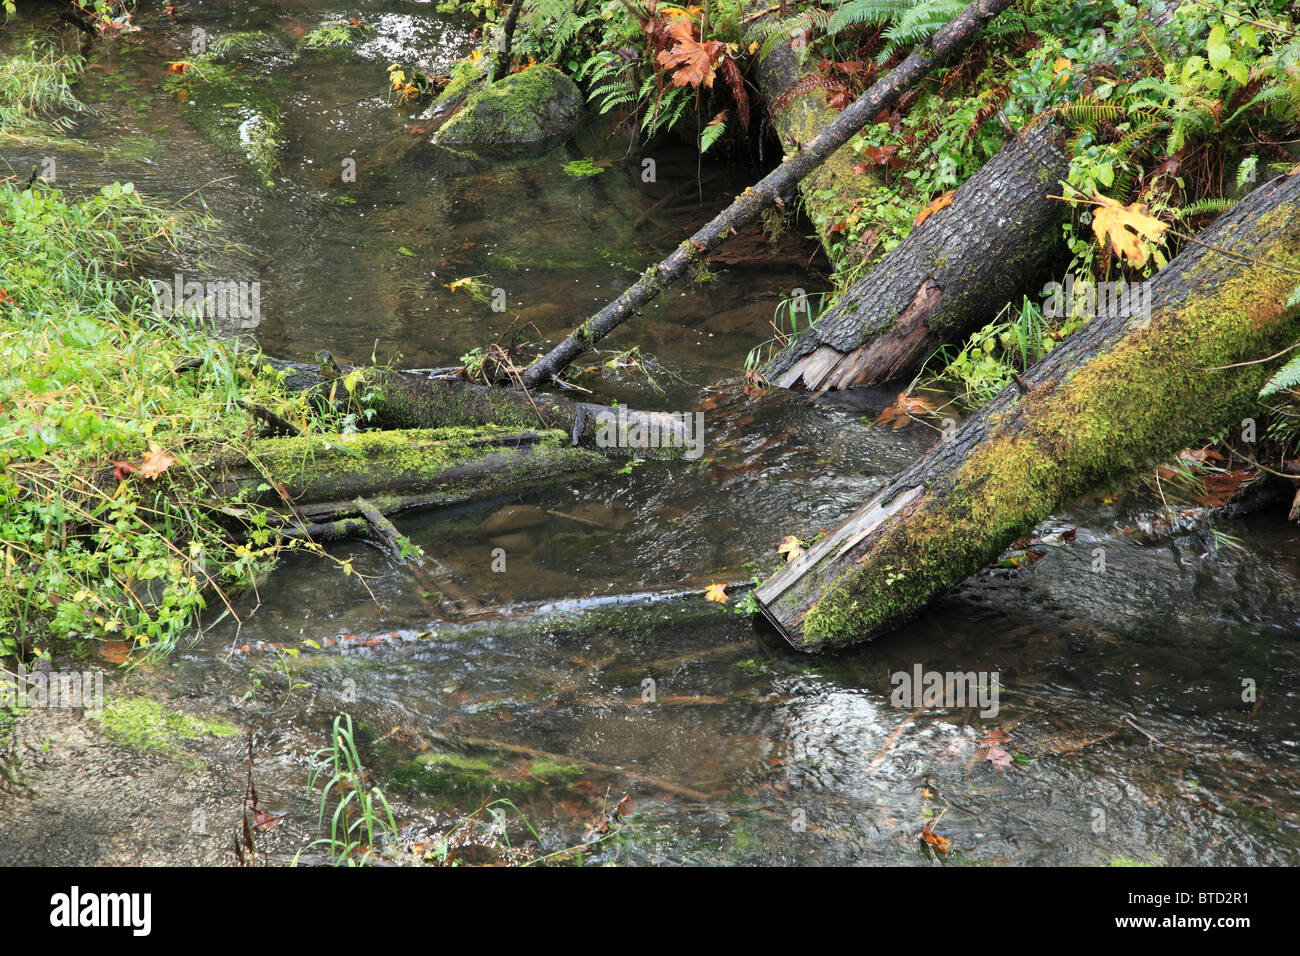 'Fish Logs' have been placed in an Oregon stream to provide habitat for trout and other native fish. - Stock Image